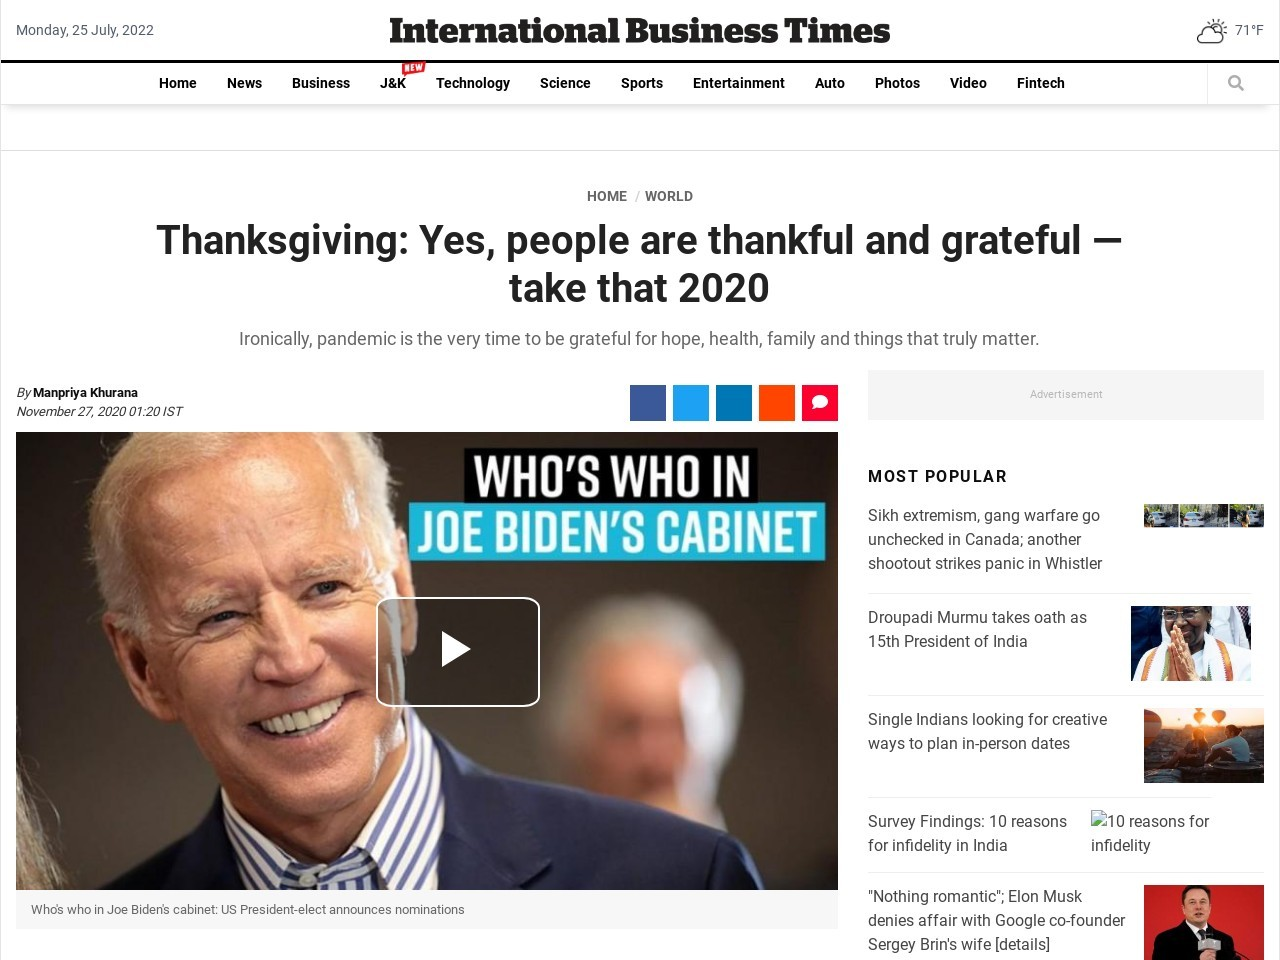 Thanksgiving 2020; vaccine, Facetime family dinners, some things people are grateful for